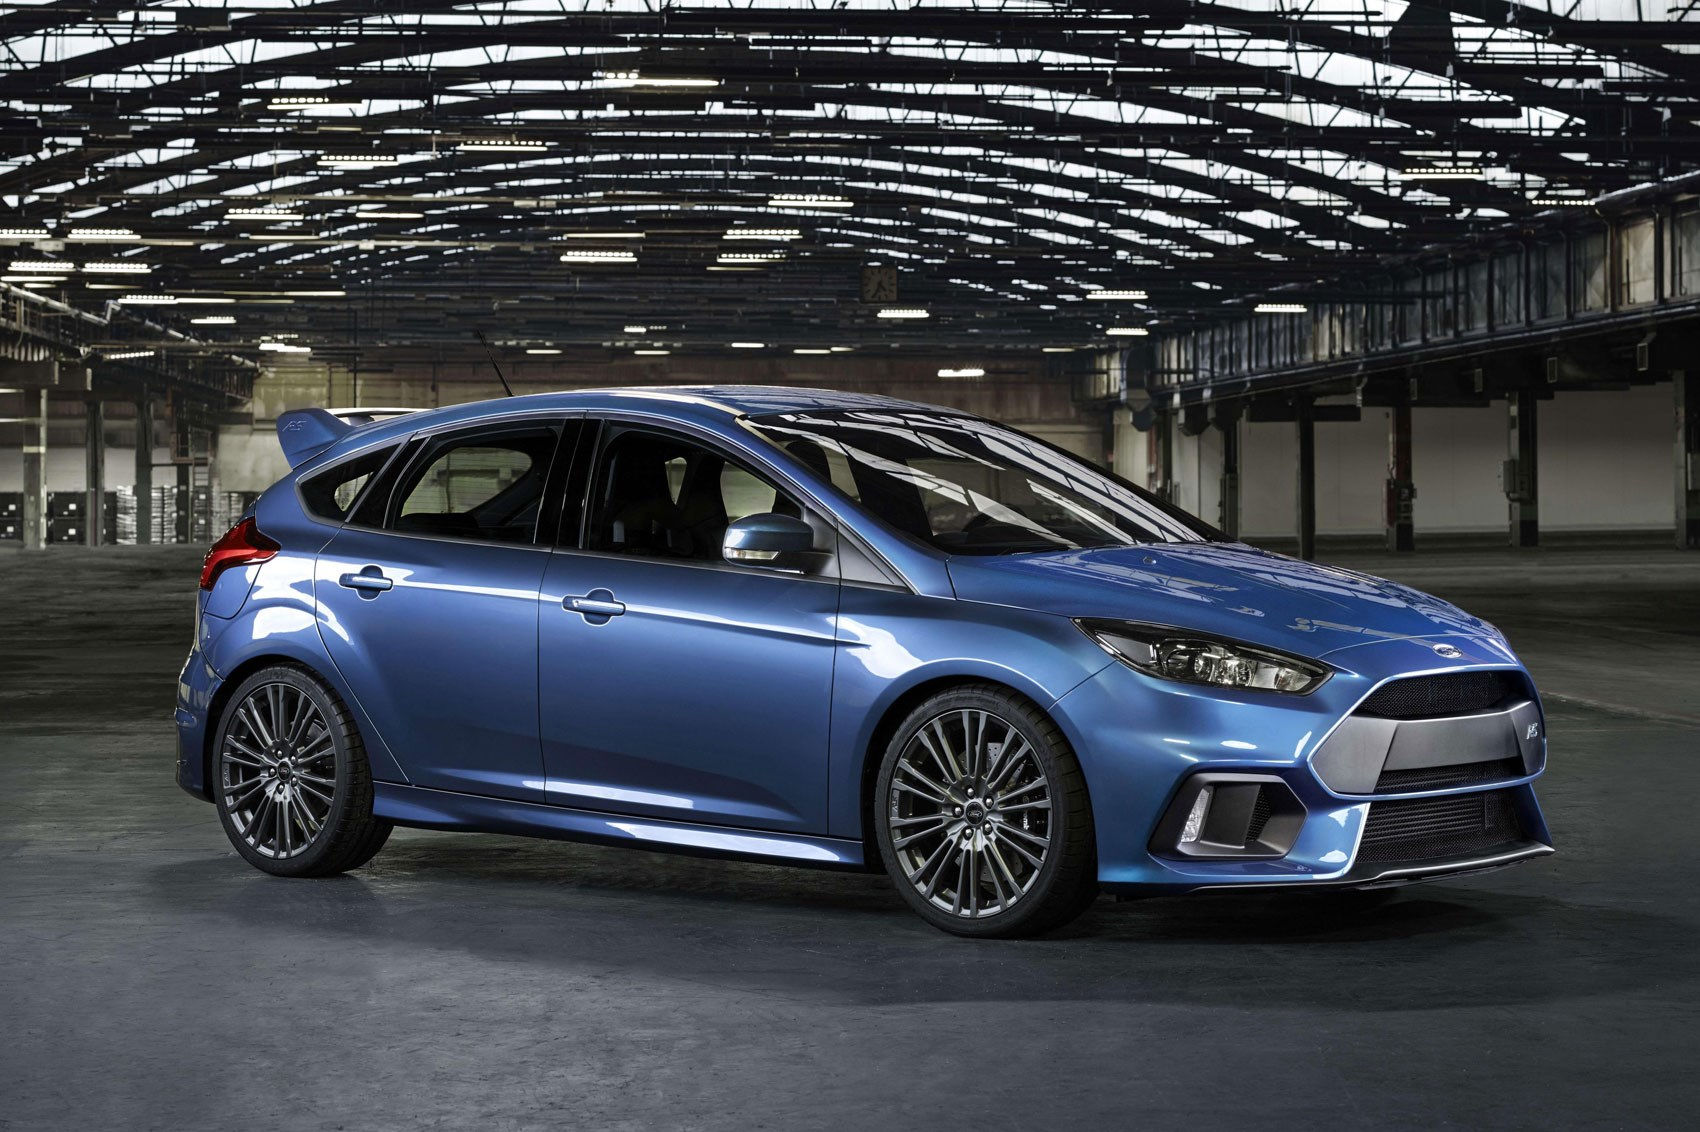 ford off component focus price rs images igallery img general